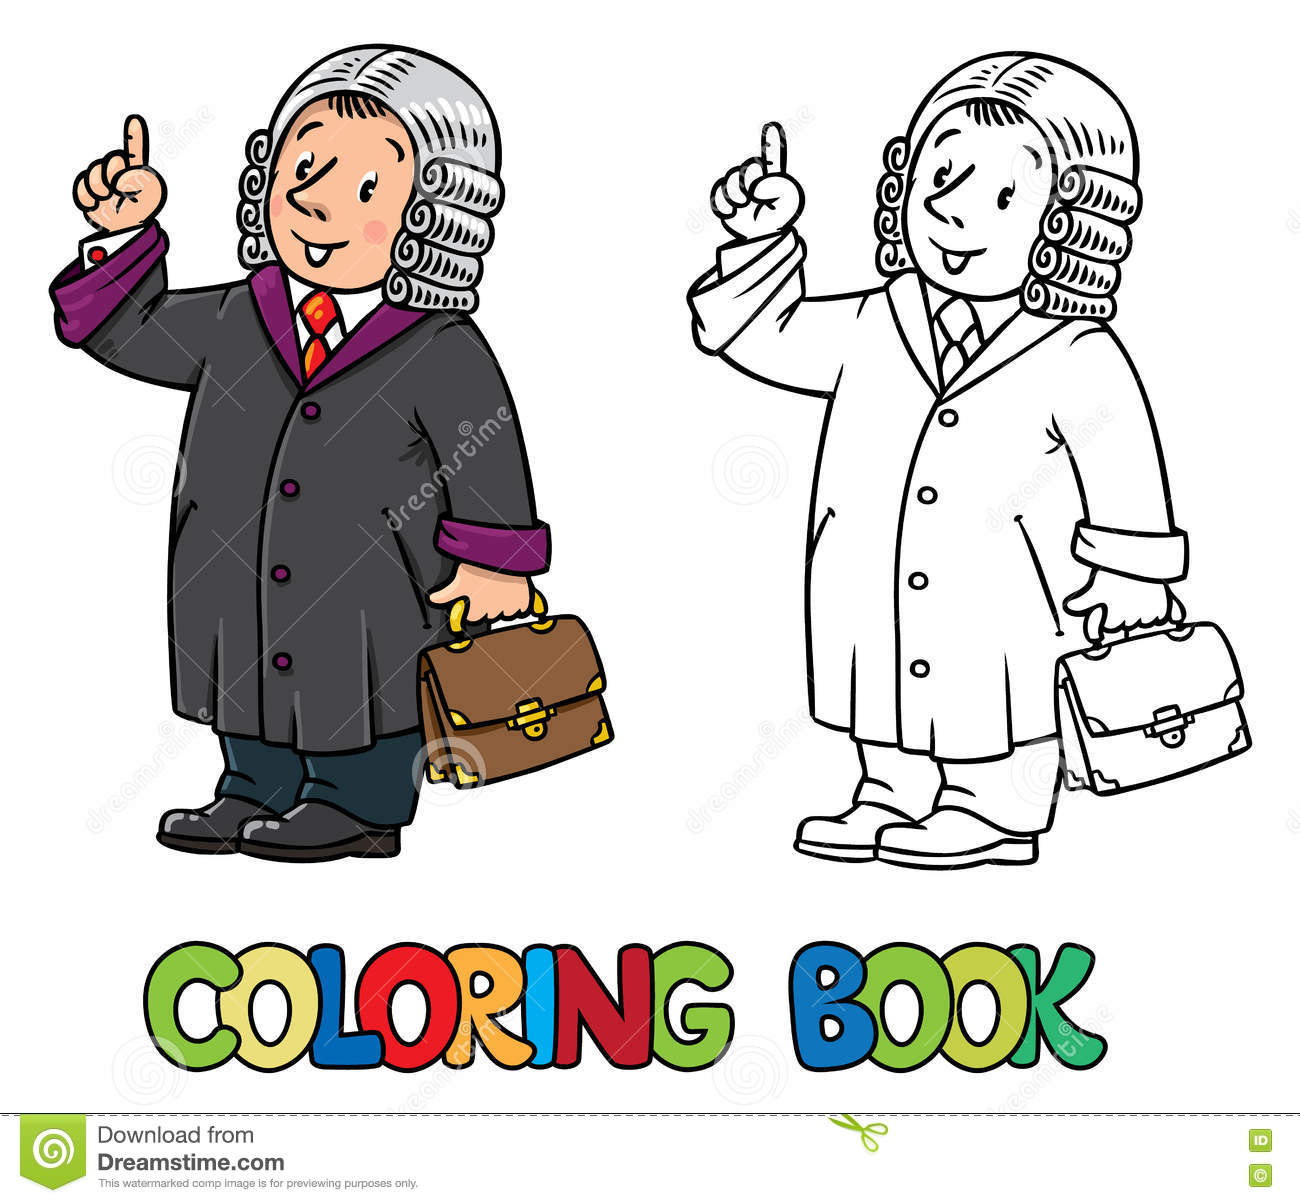 Coloring Book Of Funny Judge Stock Vector - Image: 79932280